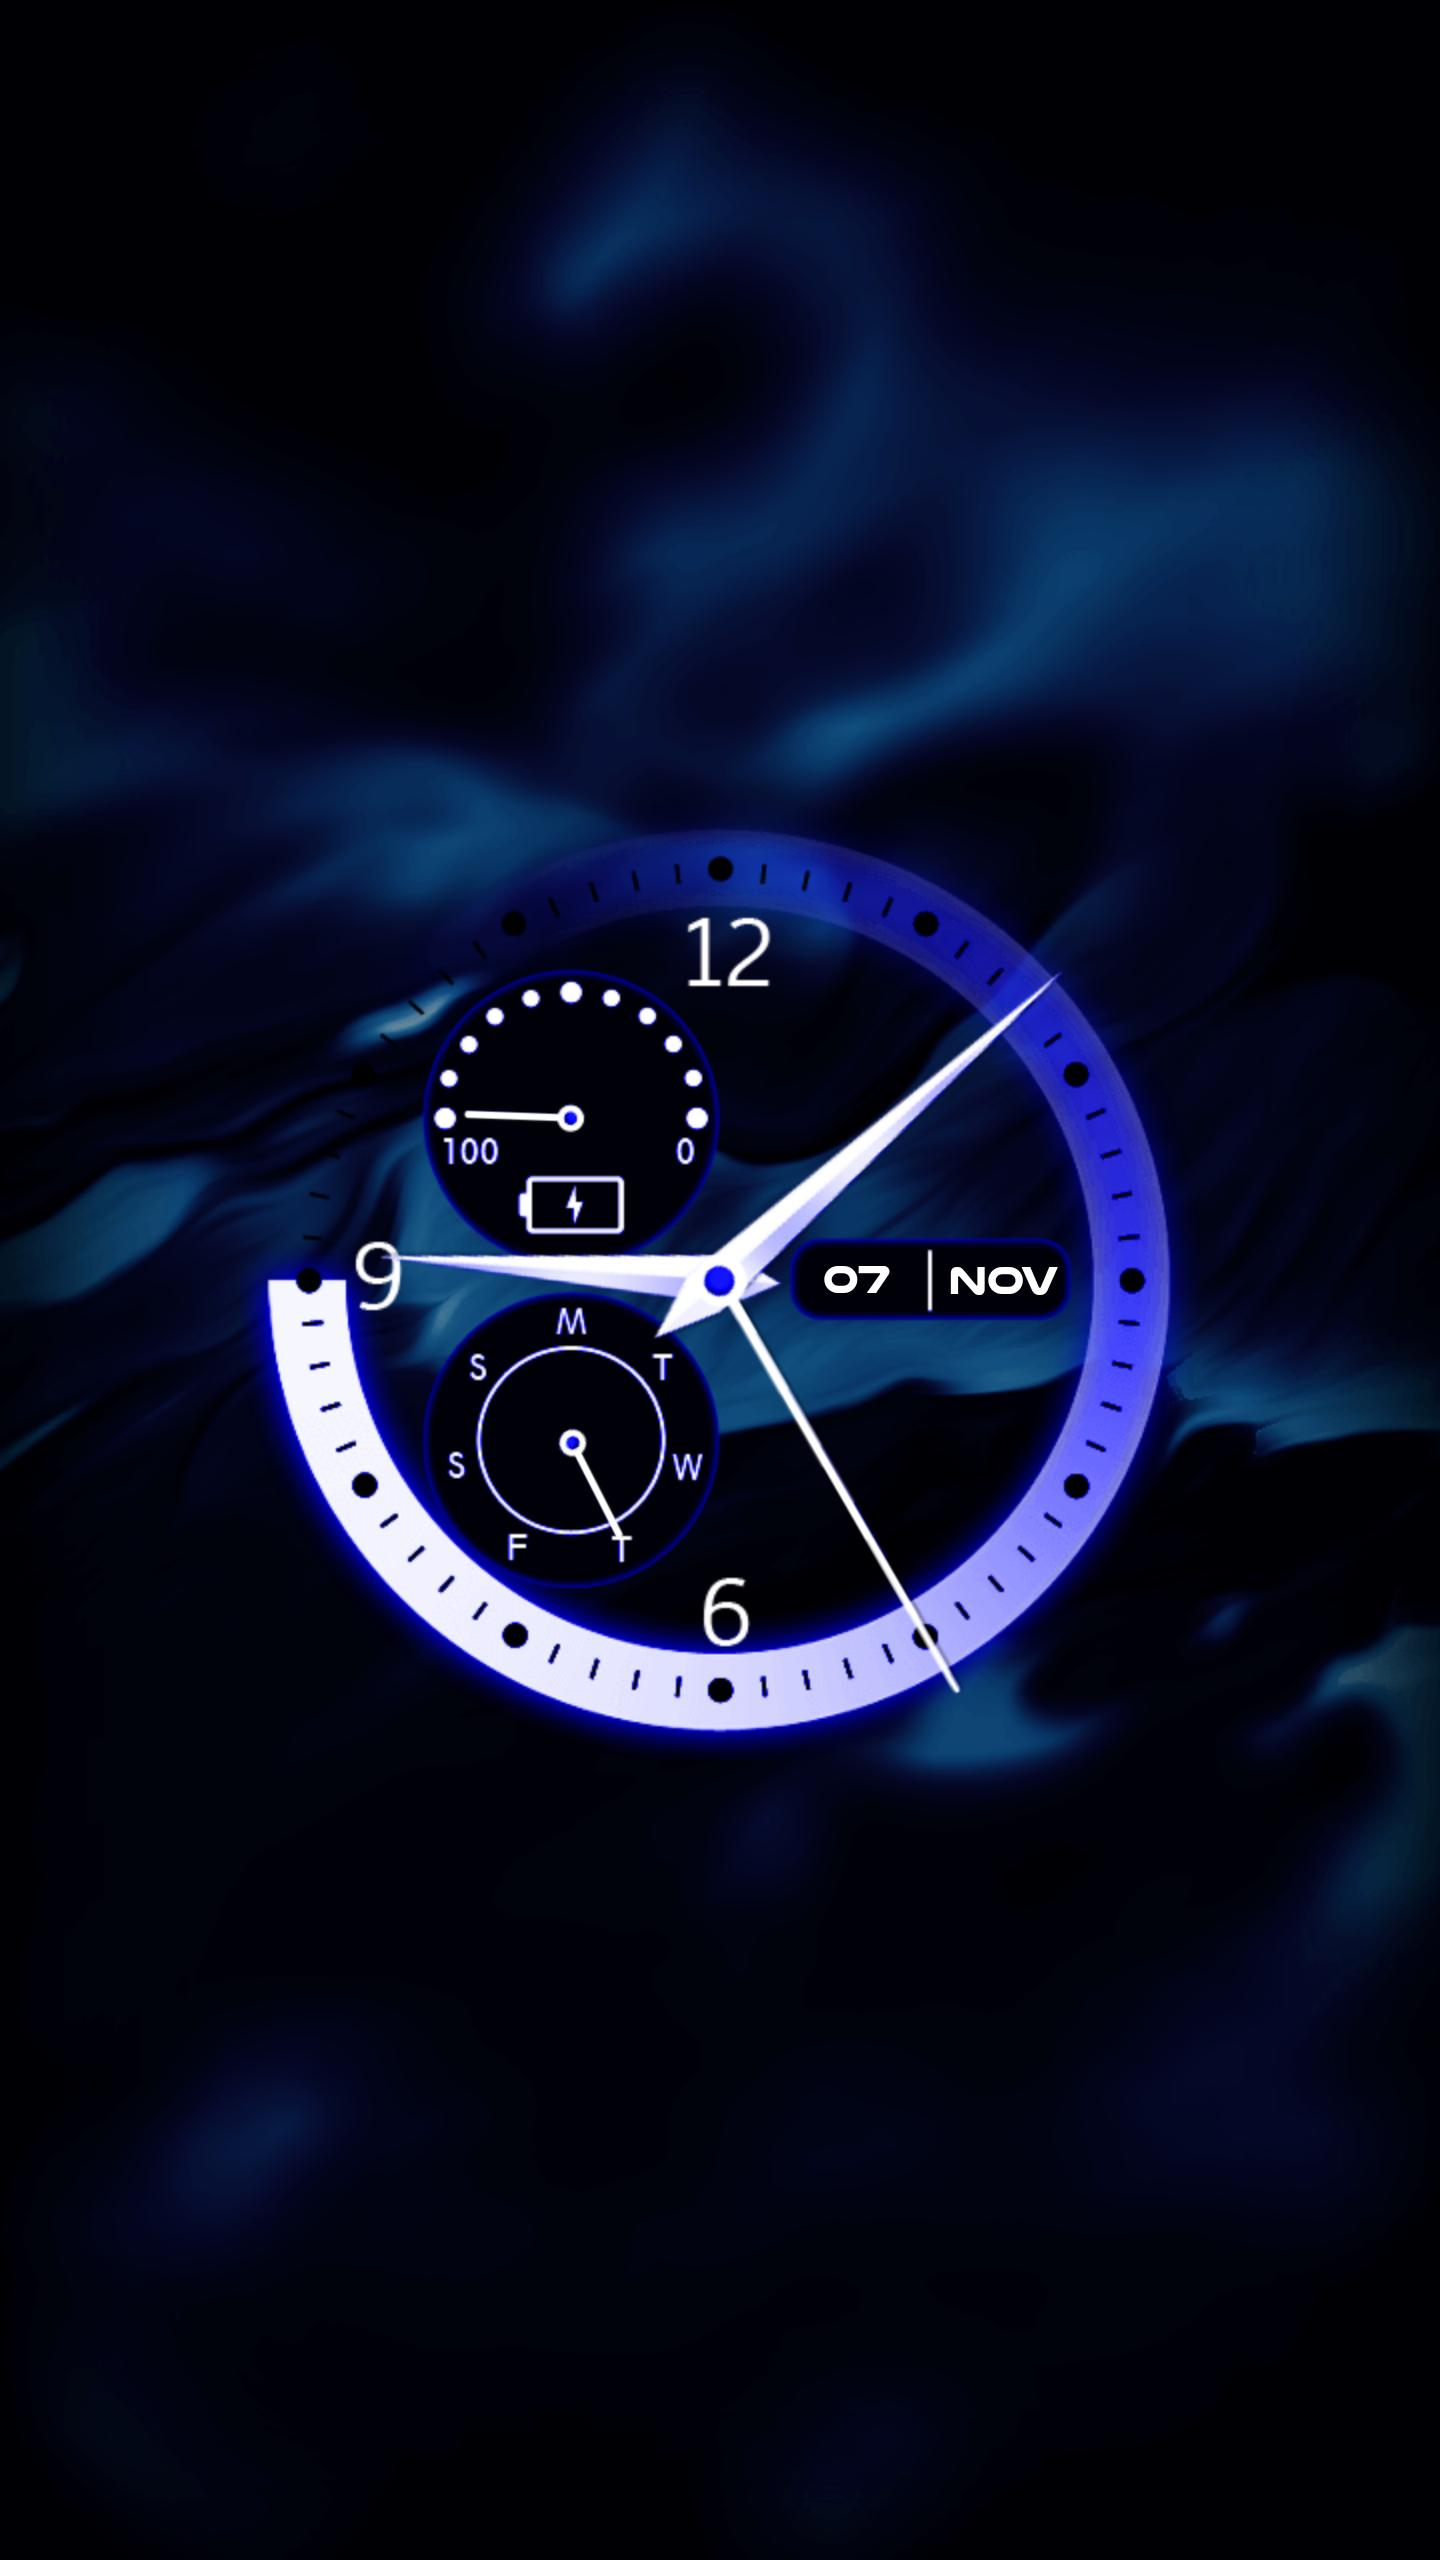 Analog Clock Live Wallpaper for Android - APK Download